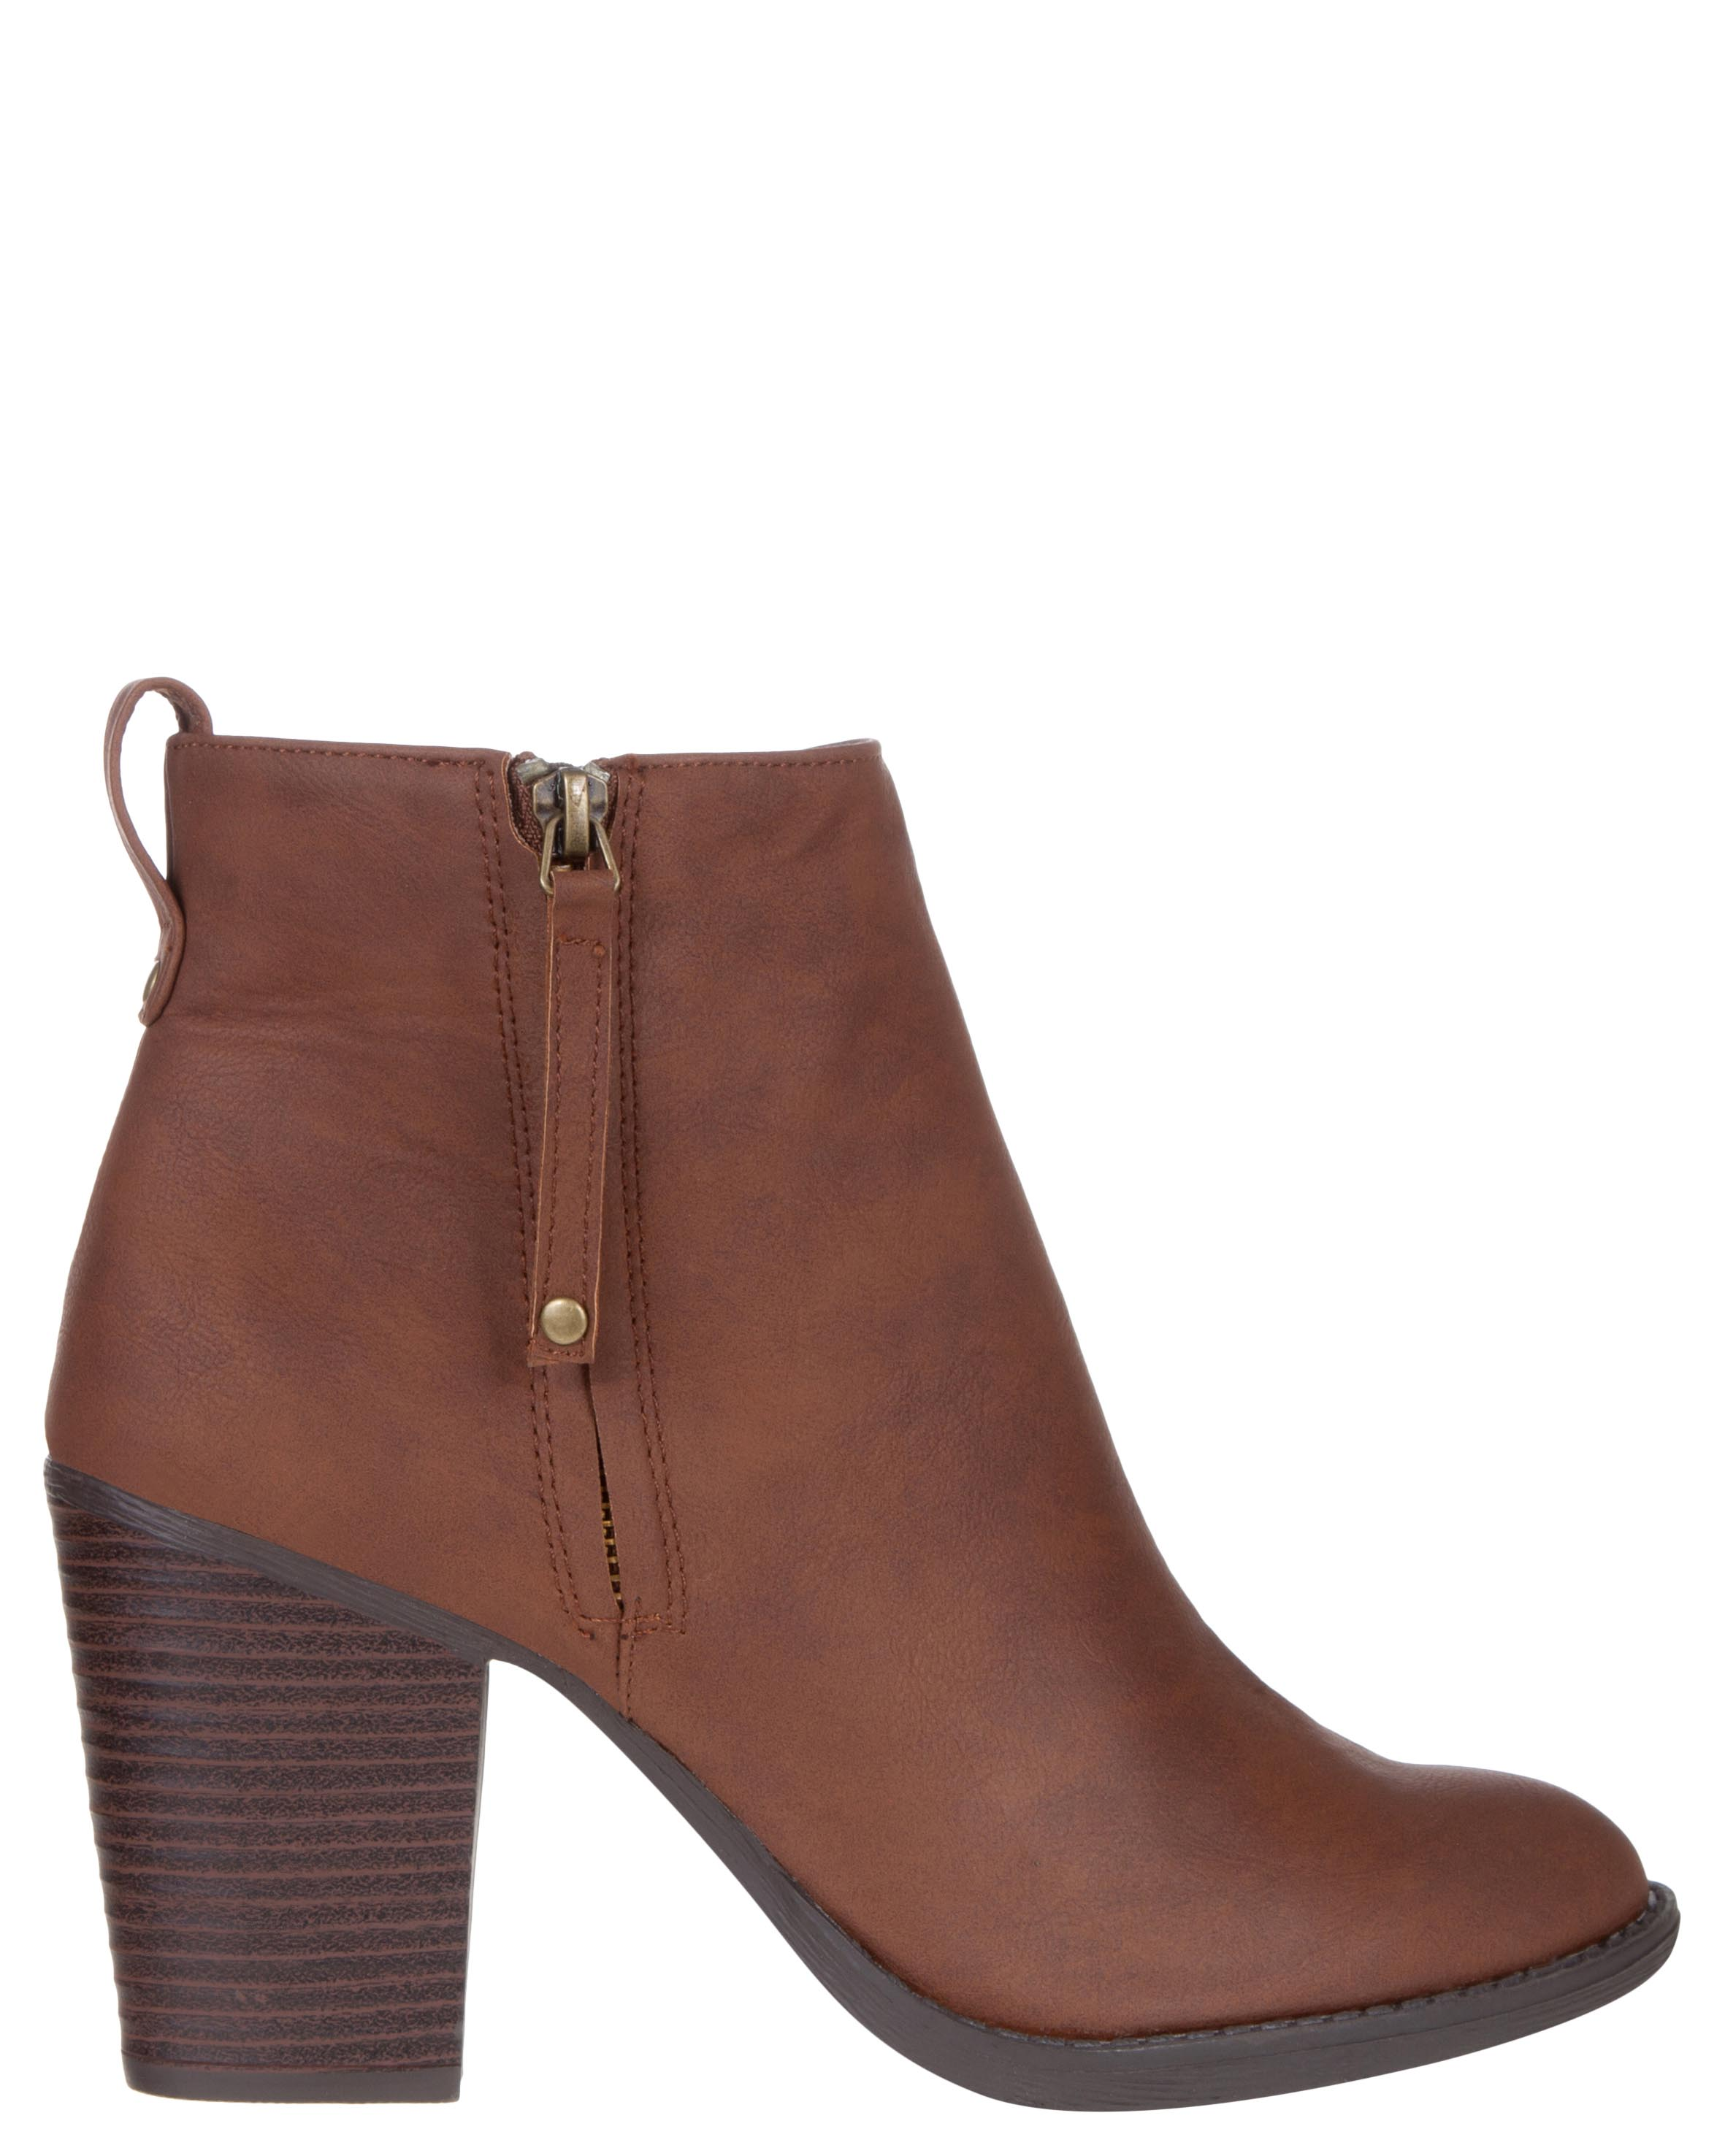 Cheap Shoes on Sale. Discount Boots, Sneakers, High Heels